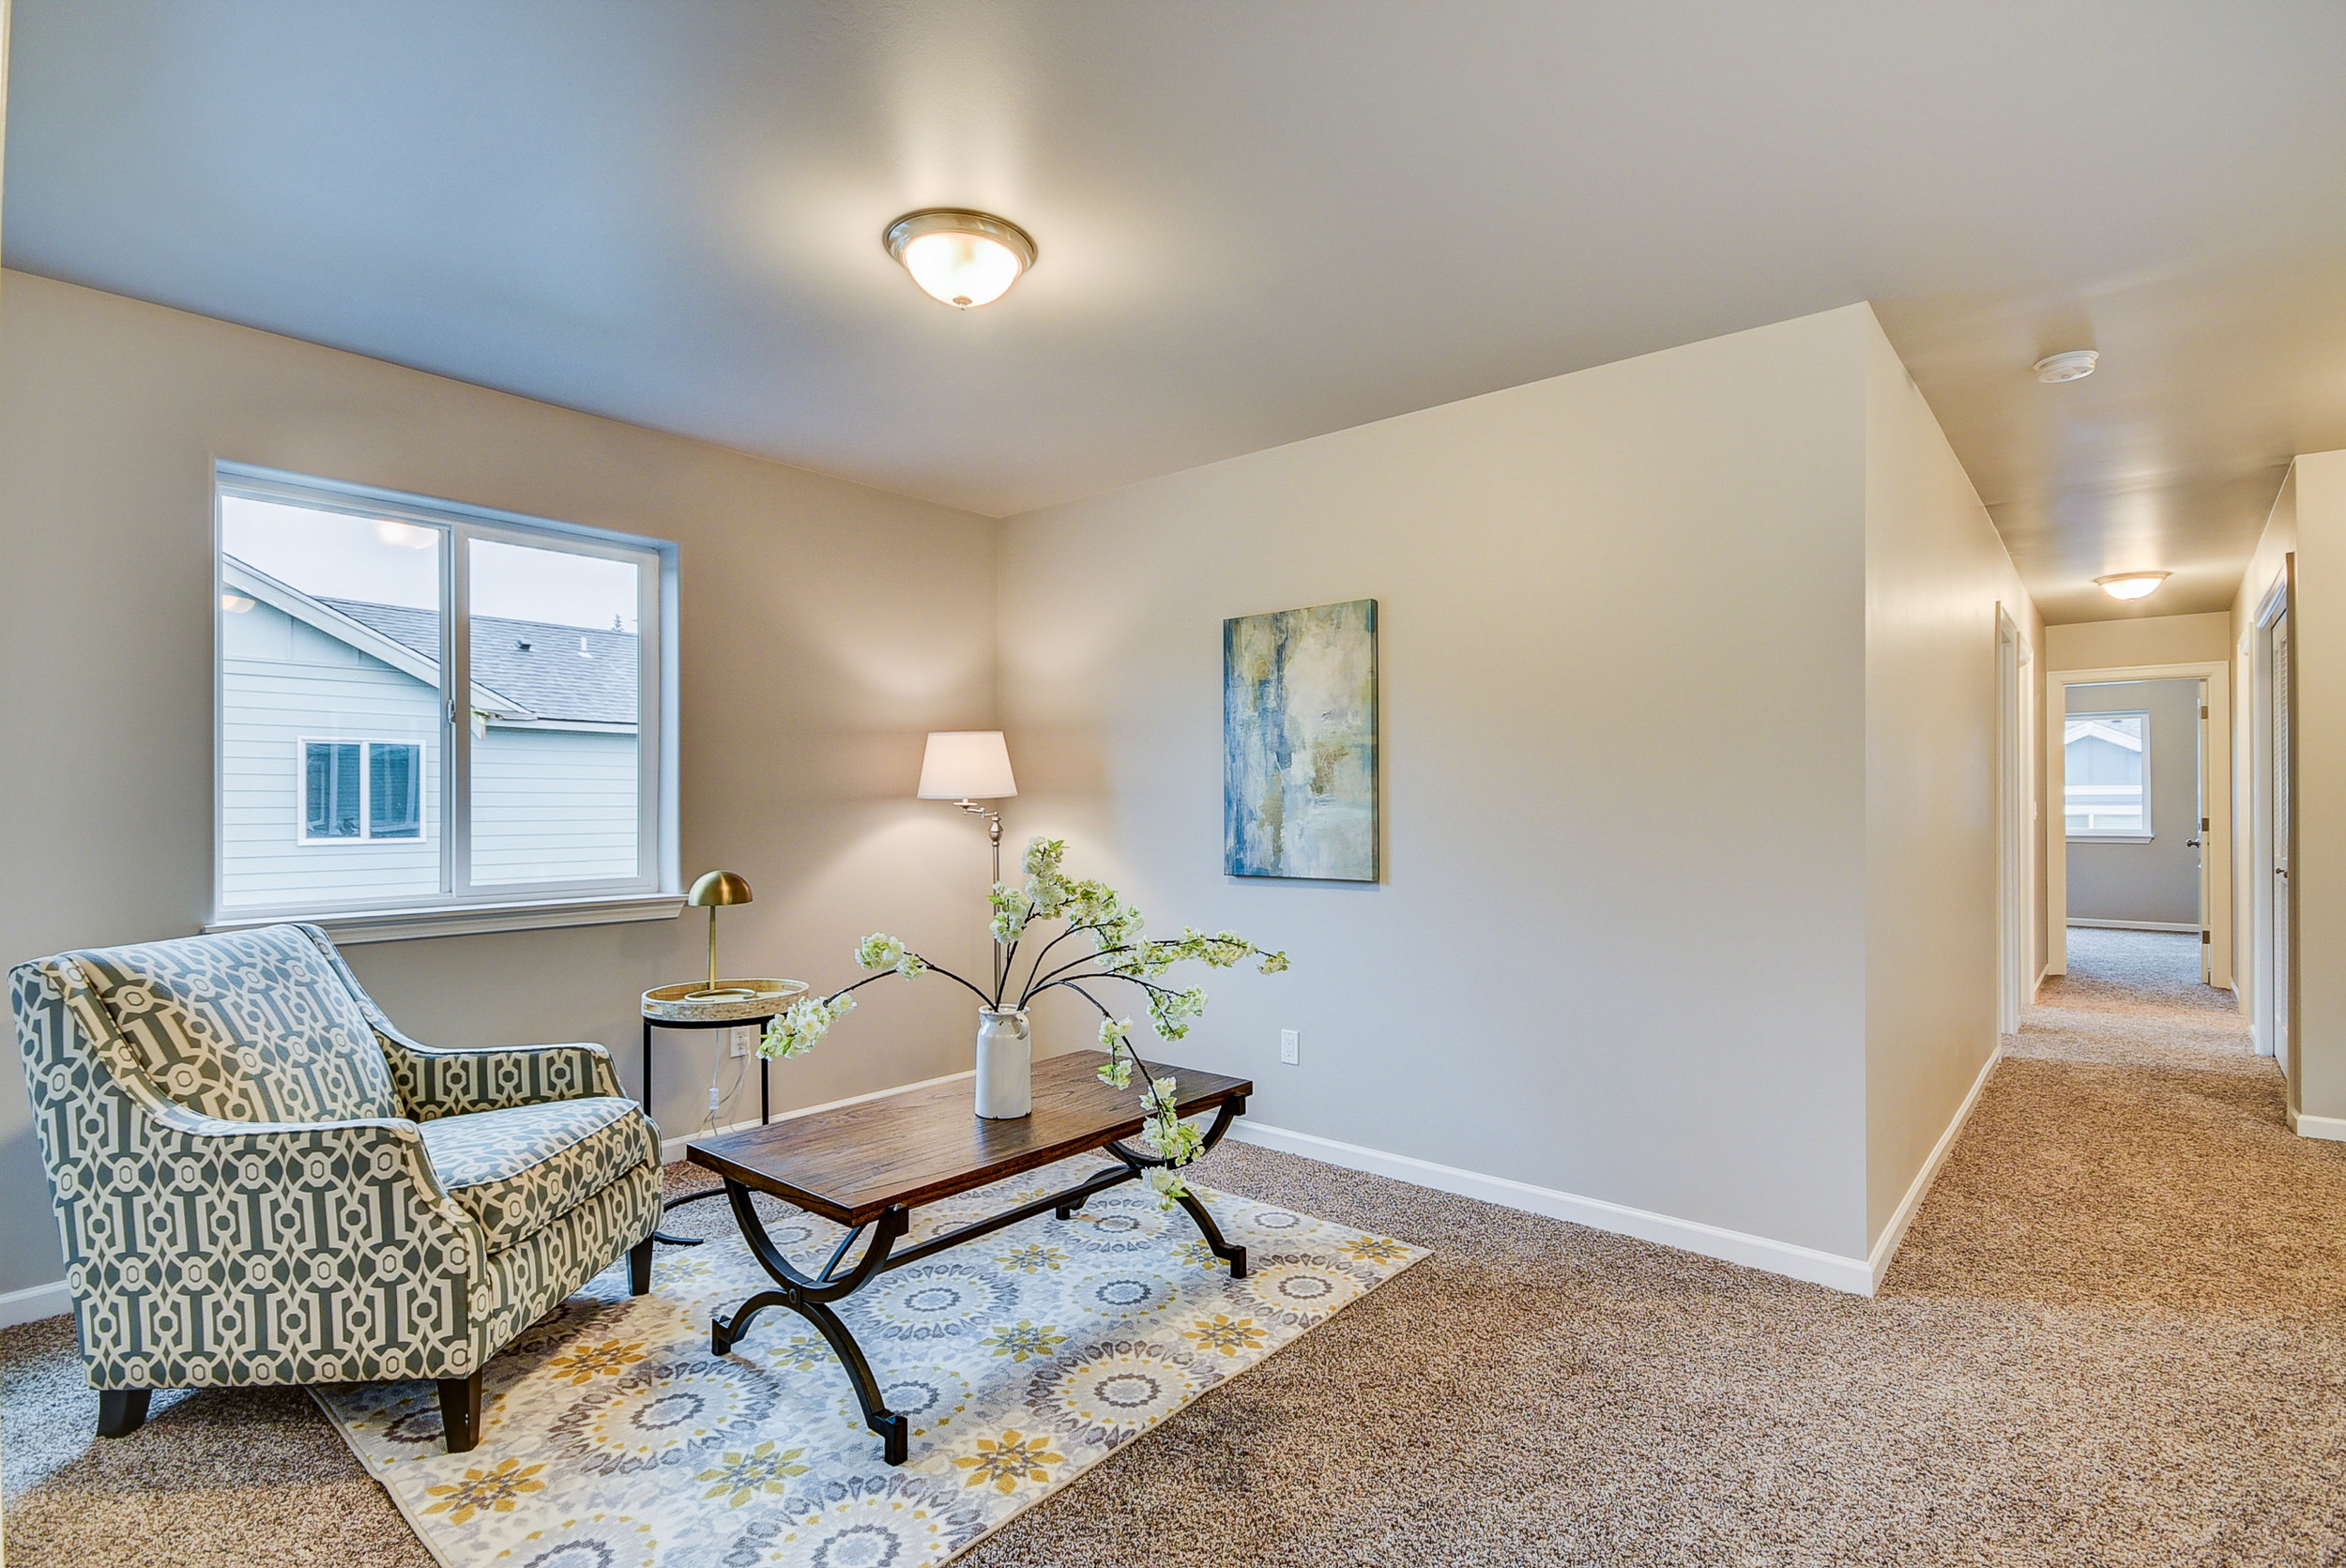 Four bedrooms AND a bonus space! 2nd family room, craft & play area, home office...or 5th bedroom...we have whatever you need!